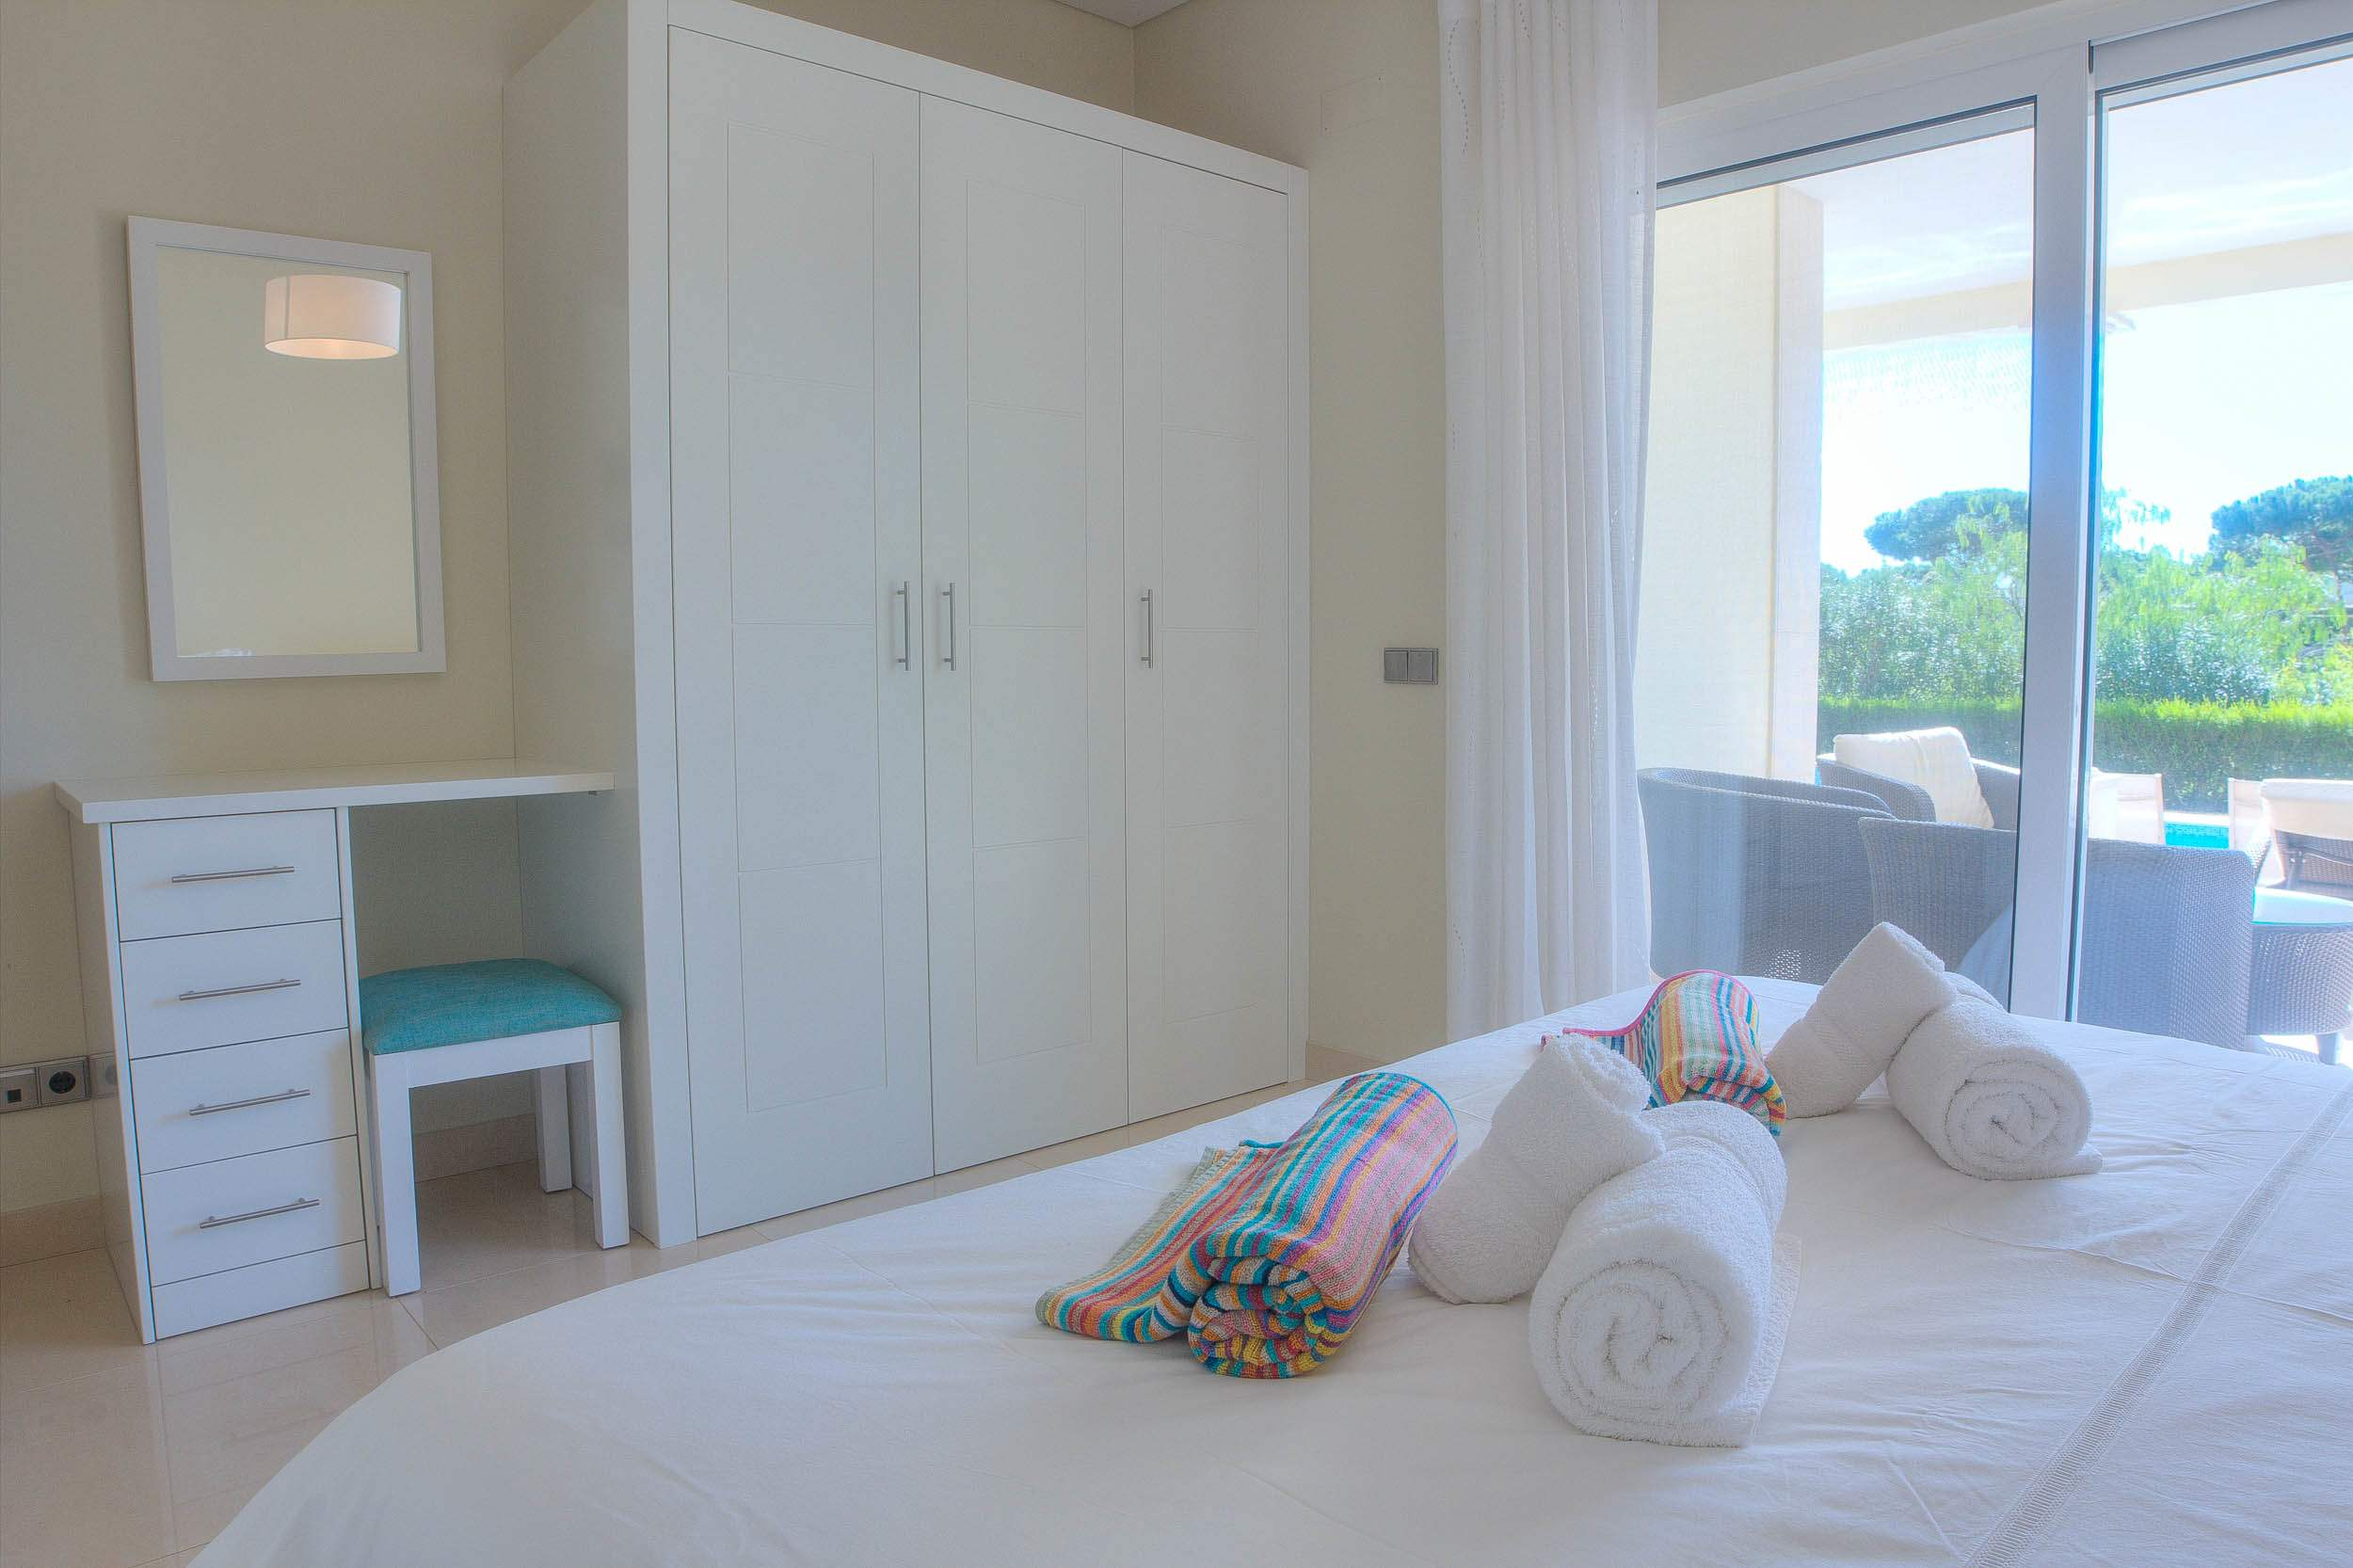 Villa Vida Doce, 6 bedroom villa in Vilamoura Area, Algarve Photo #16